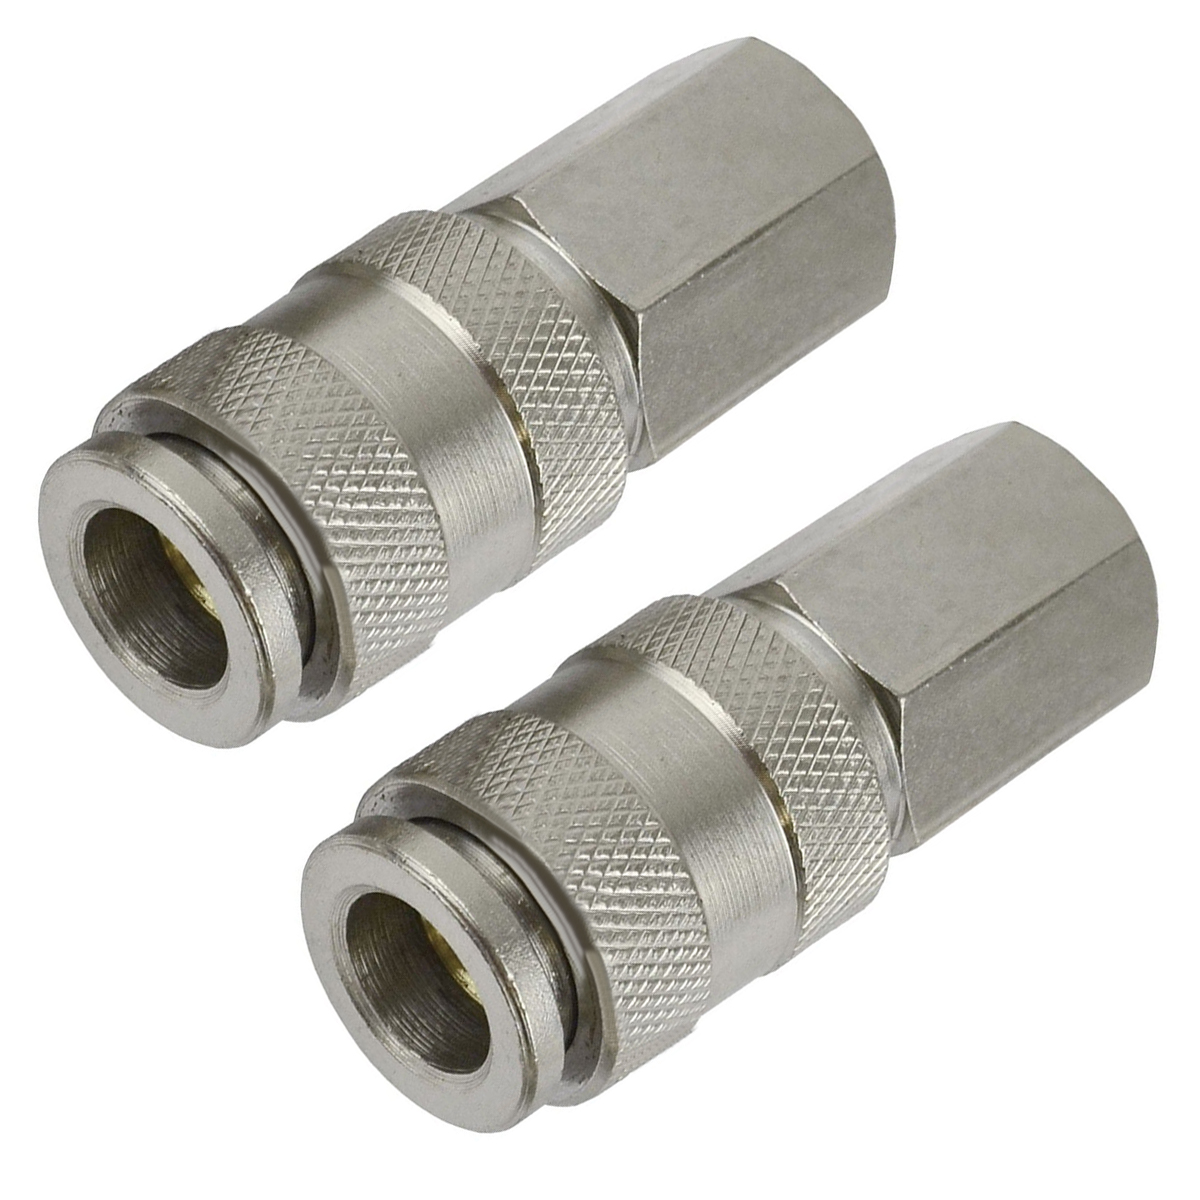 2pcs Mayitr Air Line Hose Connector 1/4 BSP Thread Euro Fitting Female/Male Quick Release Set cnz hosetail connector fitting barbed female bsp 1 1 2 inch thread set of 2